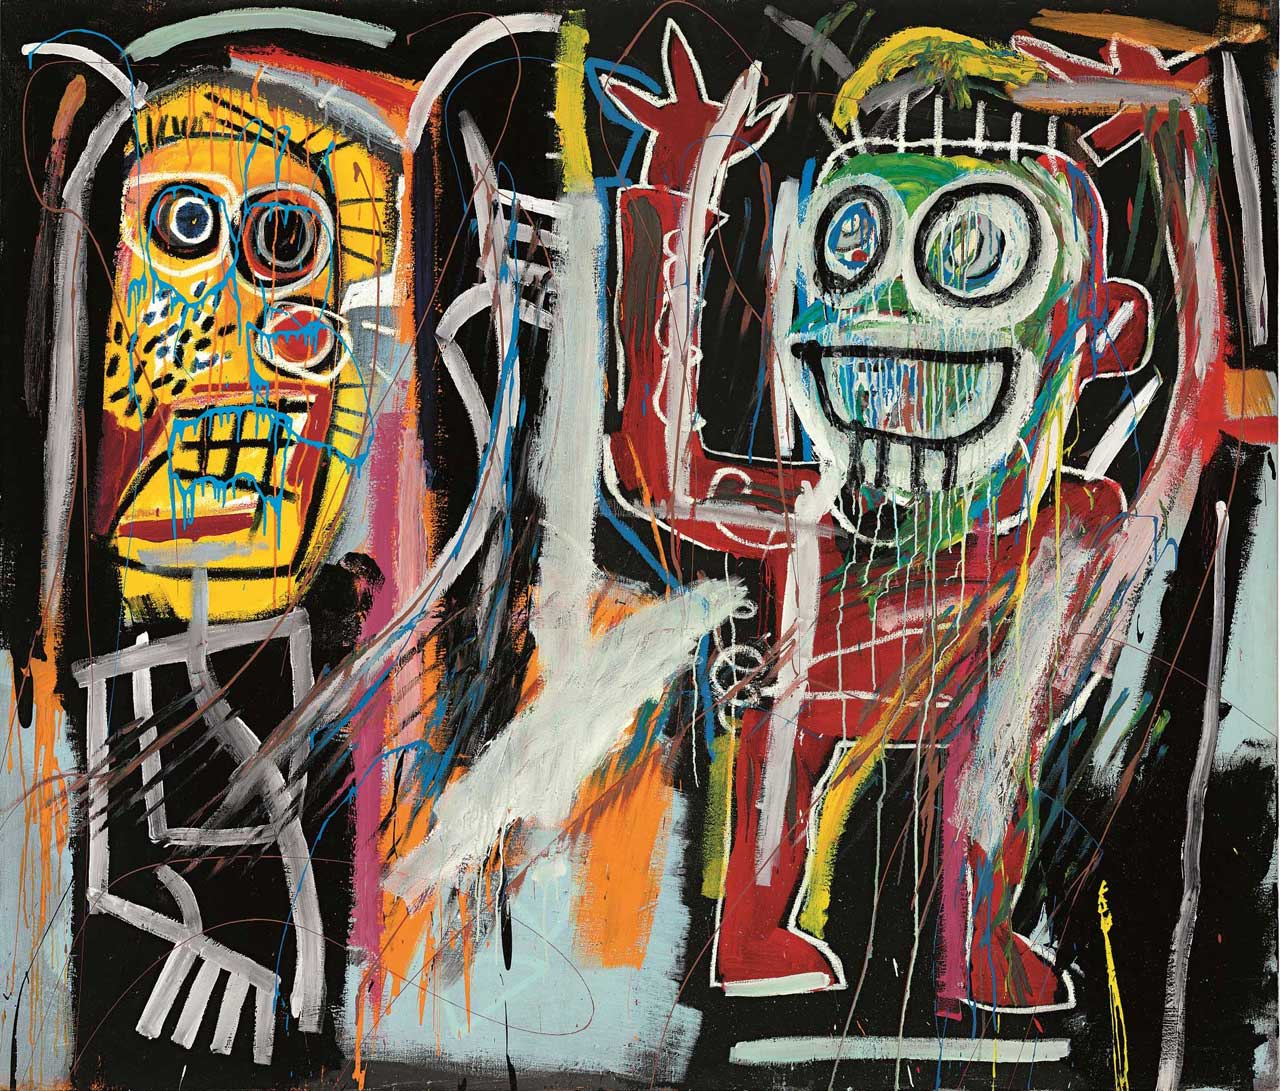 Jean-Michel Basquiat, Dustheads, 1982. Source: Christie's Images Ltd. 2013